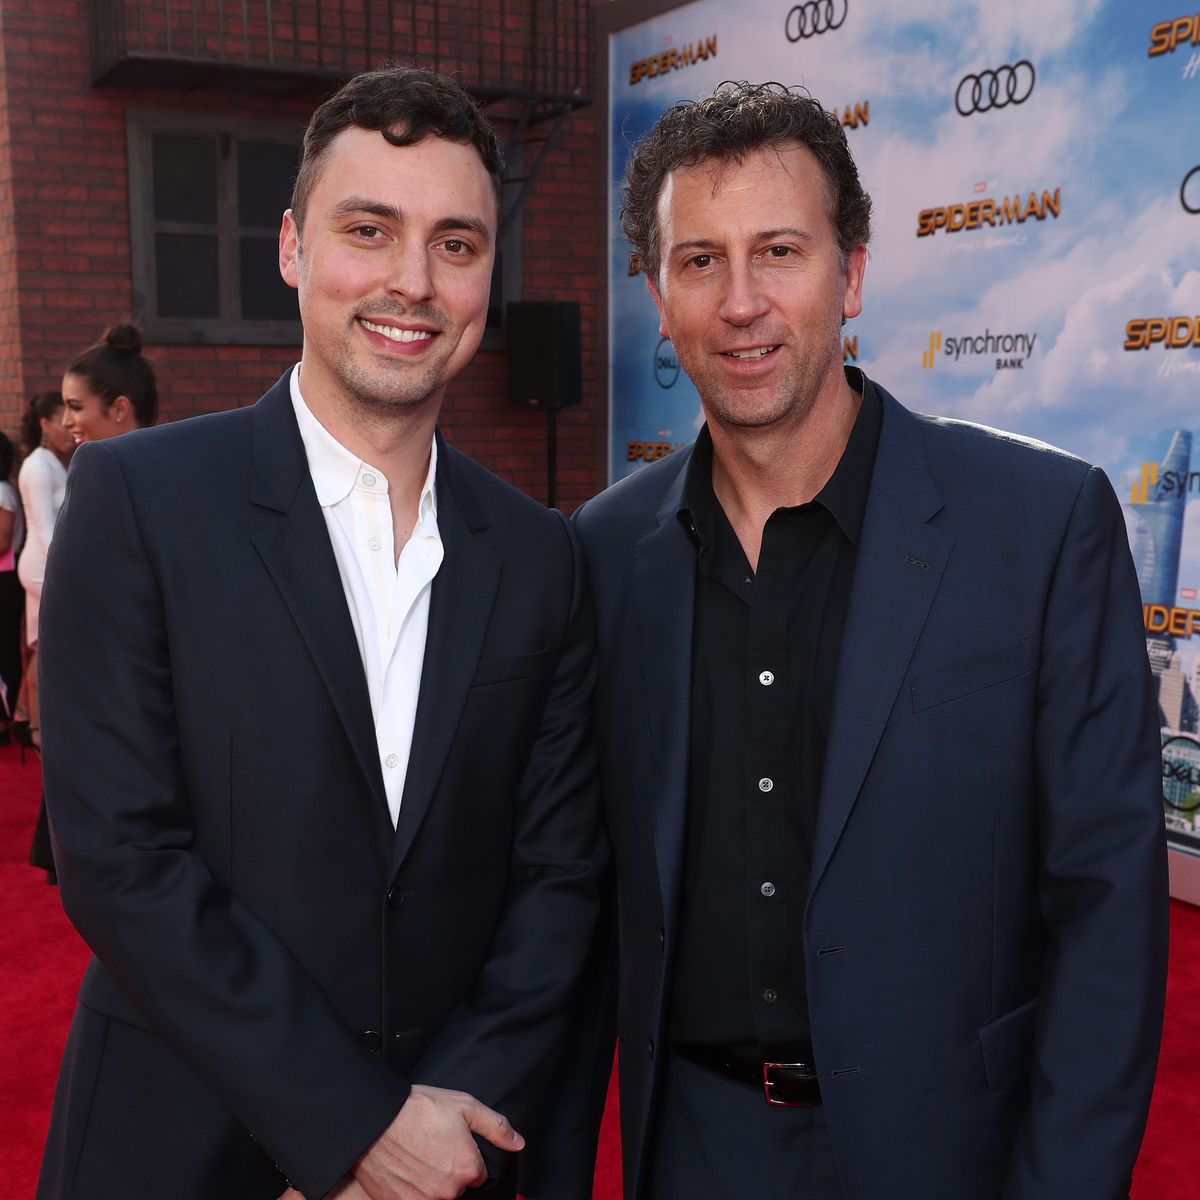 john_francis_daley_jonathan_goldstein_gettyimages-803378468.jpg